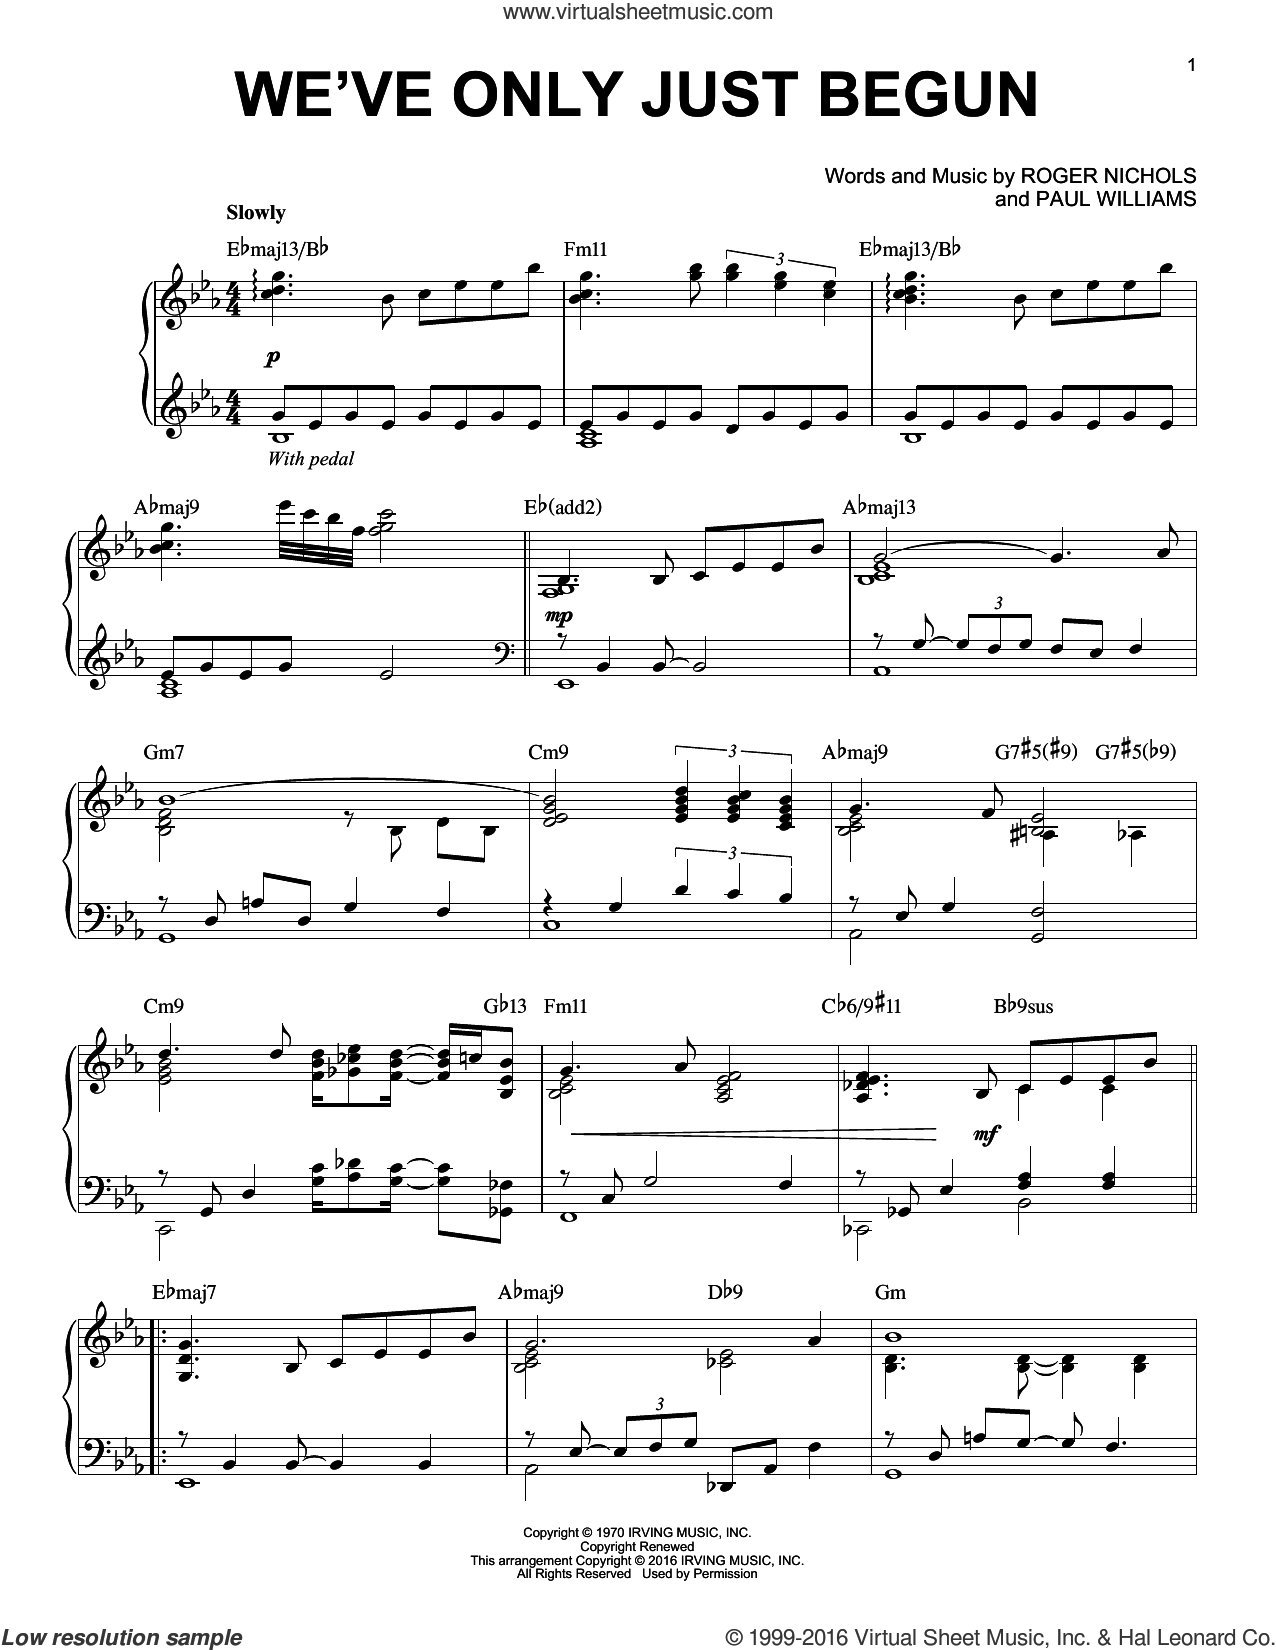 We've Only Just Begun sheet music for piano solo by Paul Williams, Carpenters and Roger Nichols, intermediate skill level